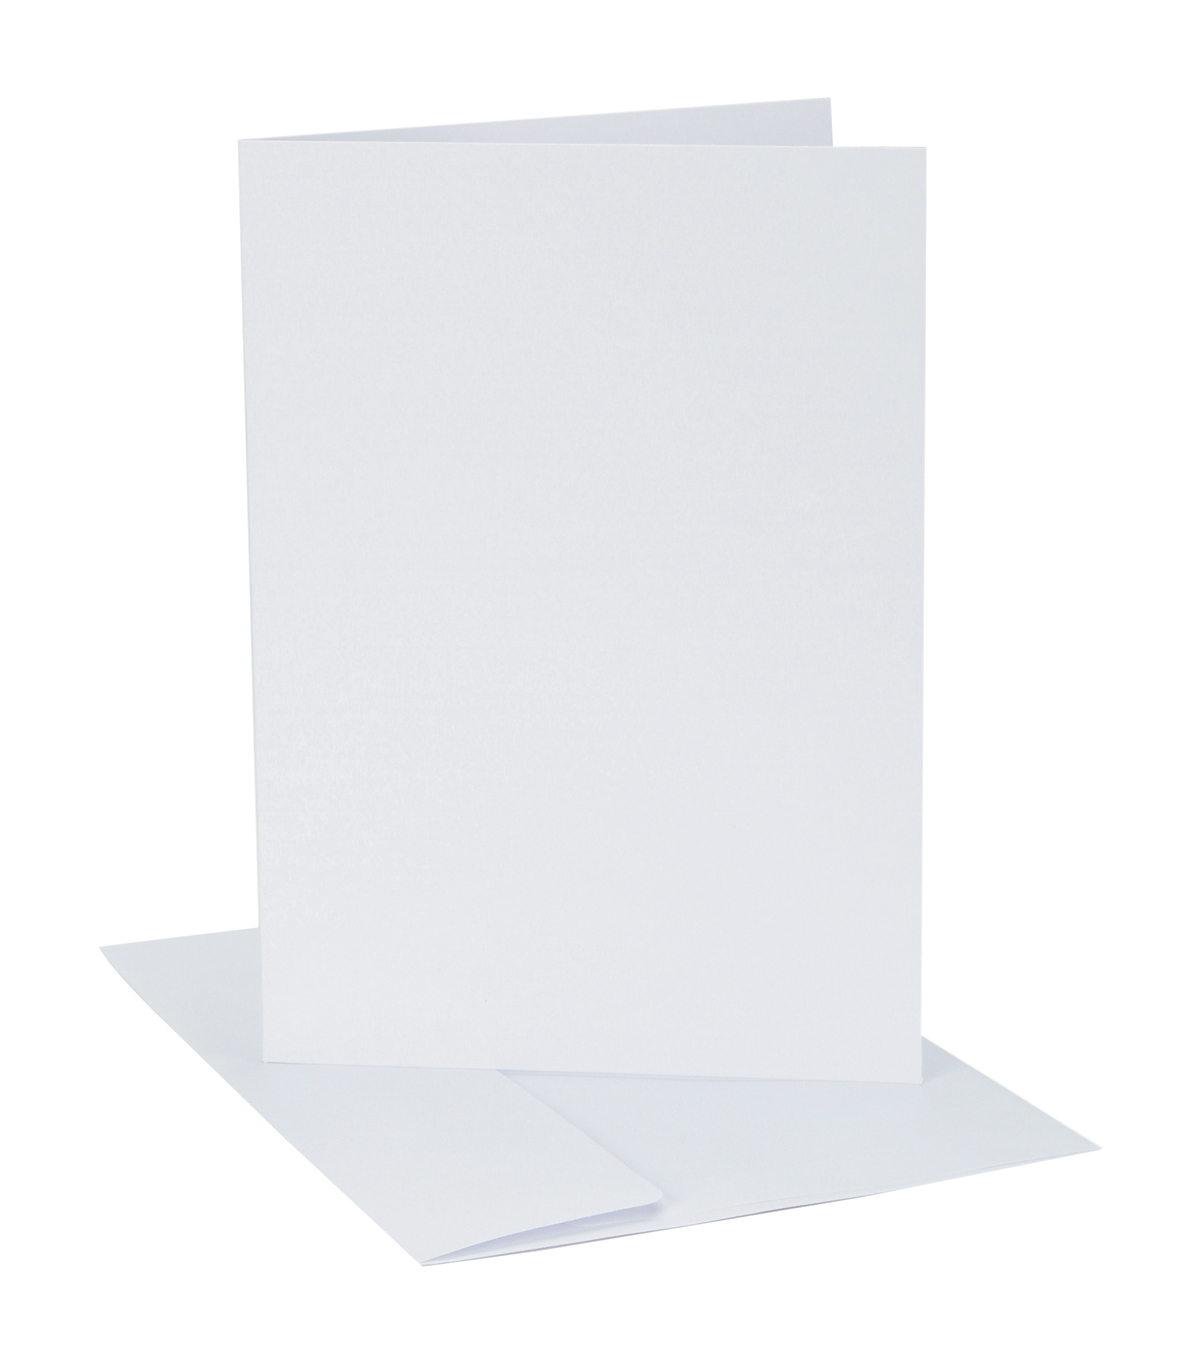 Core'dinations Card/Envelopes:  A7 White; 12 pack